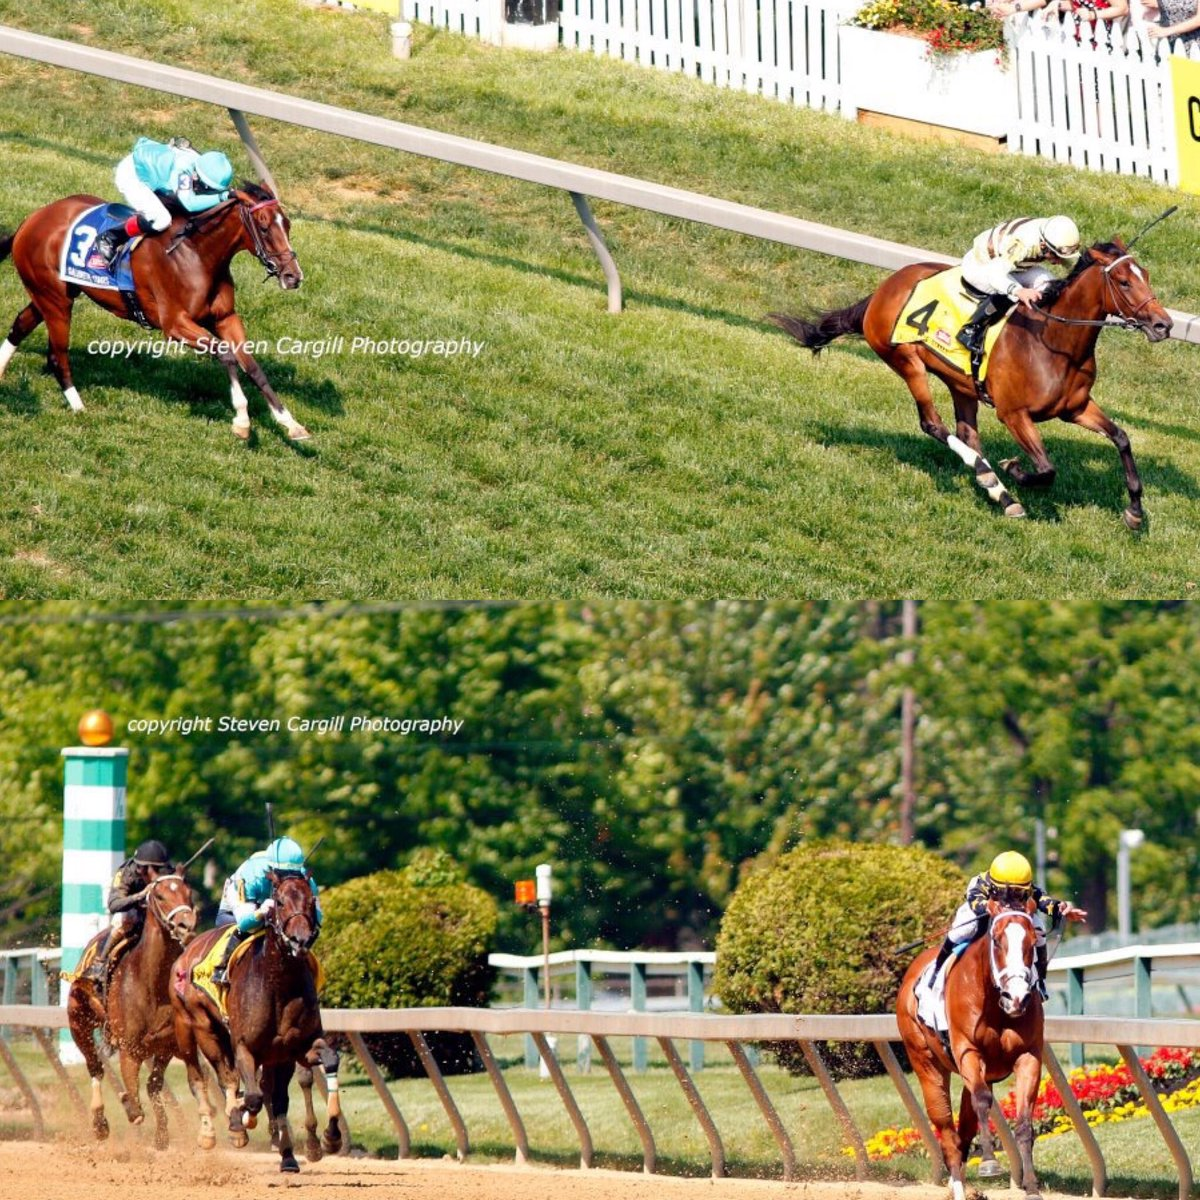 """test Twitter Media - PLEASE FLATTER ME (bottom) ran a lifetime top (8- @RagozinSheets) and got beat a pole. 👀 Covfefe @LNJFoxwoods @bradcoxracing. Was a weekend of seconds (👰 maids) until Catholic Boy. The prayer worked and """"ITS CONFIRMED, HE'S BACK!"""" @larrycollmus with the genius call again!!!🤣 https://t.co/pQzl04E9dB"""